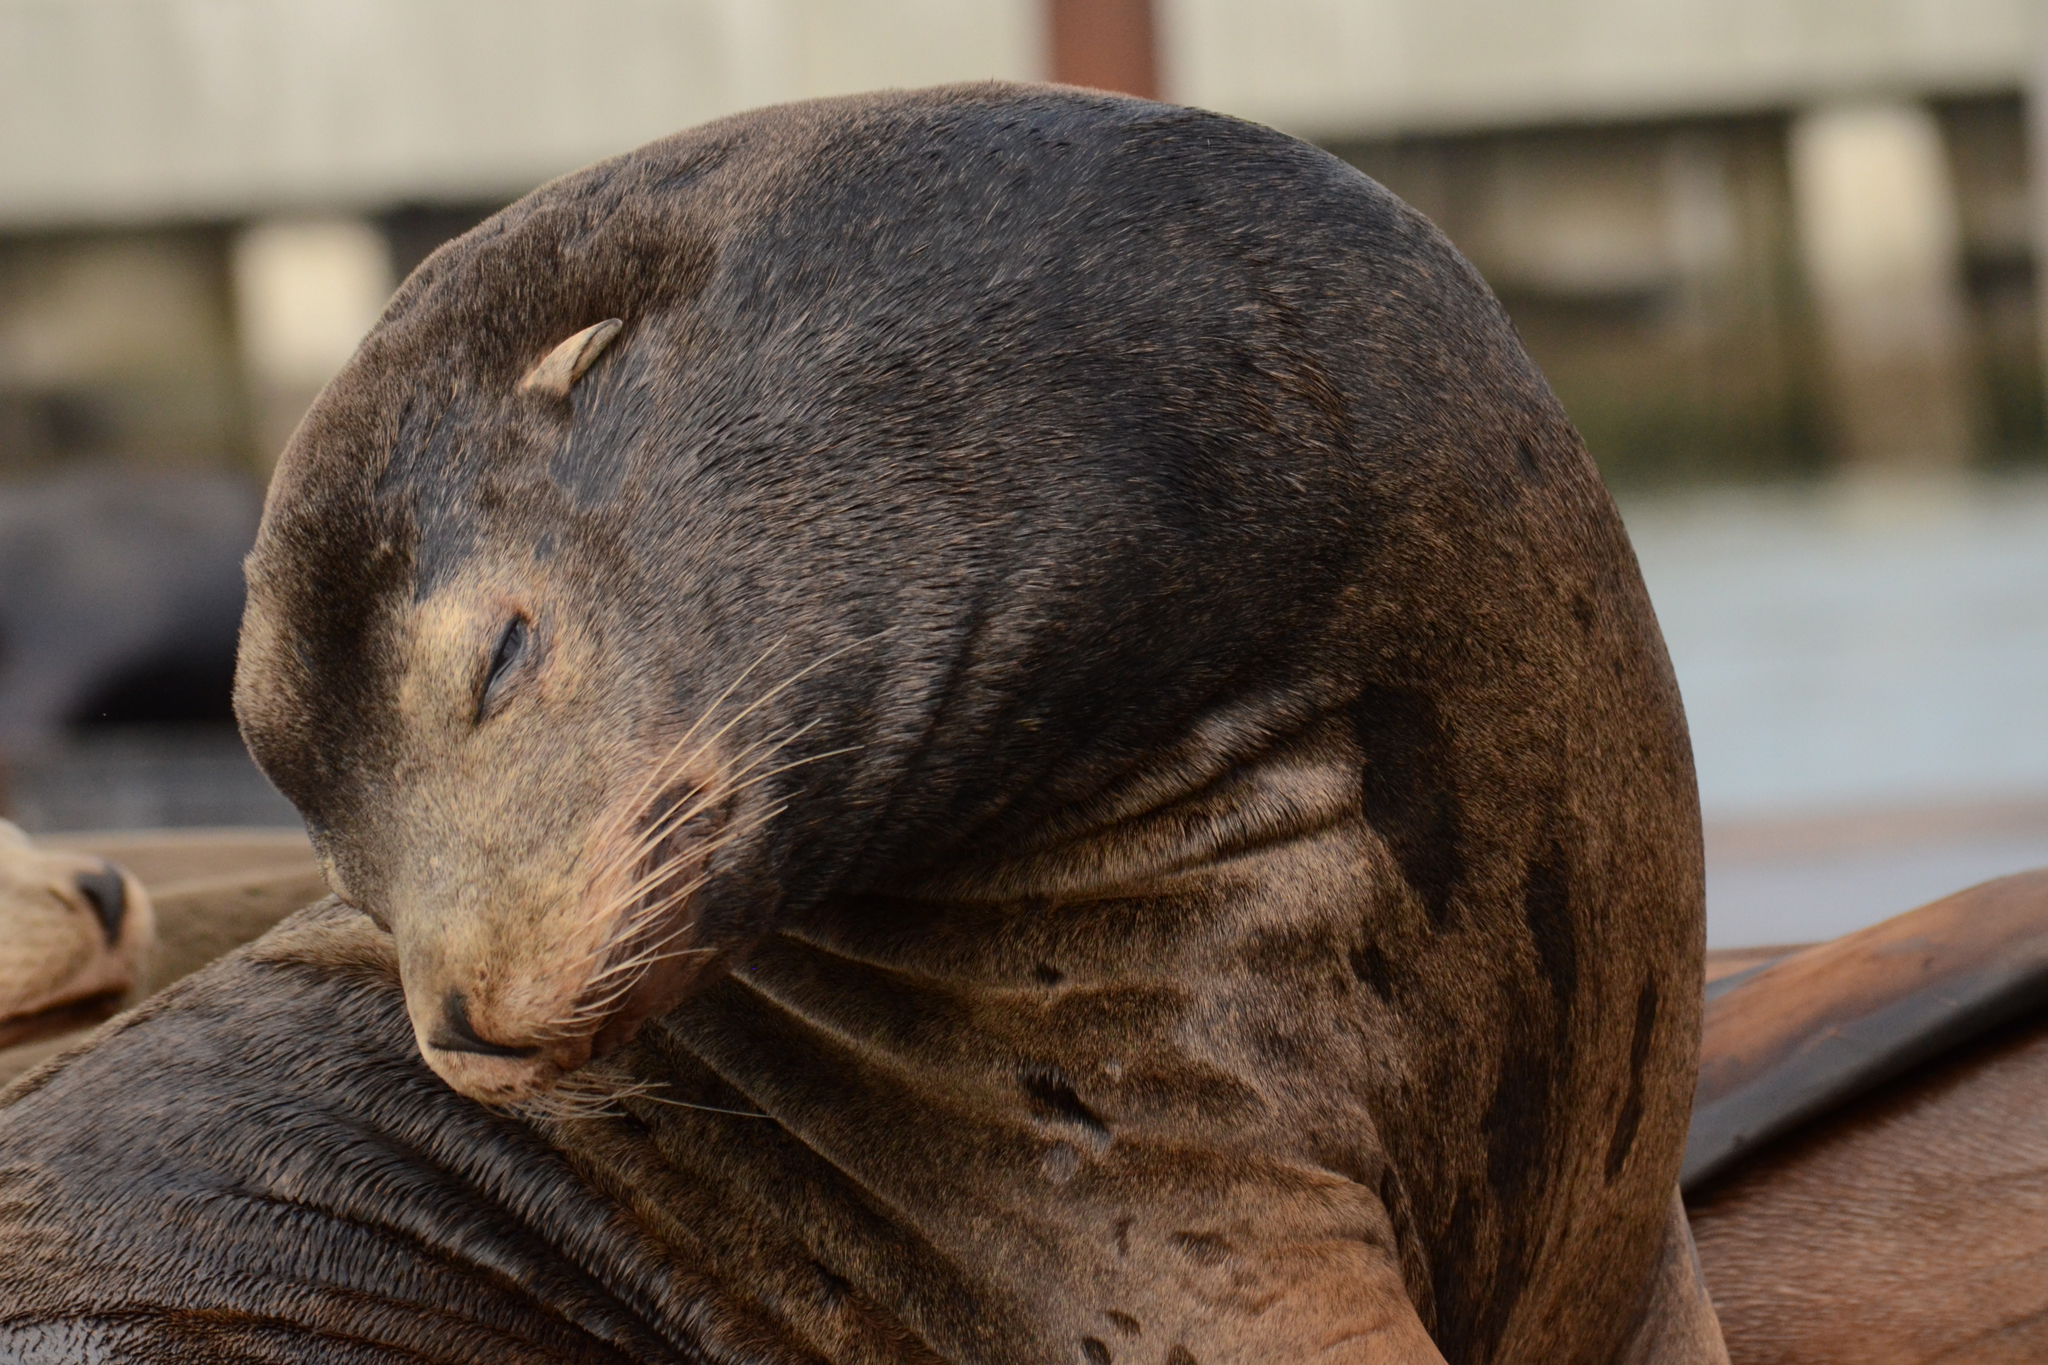 Commune with sea lions at Pier 39